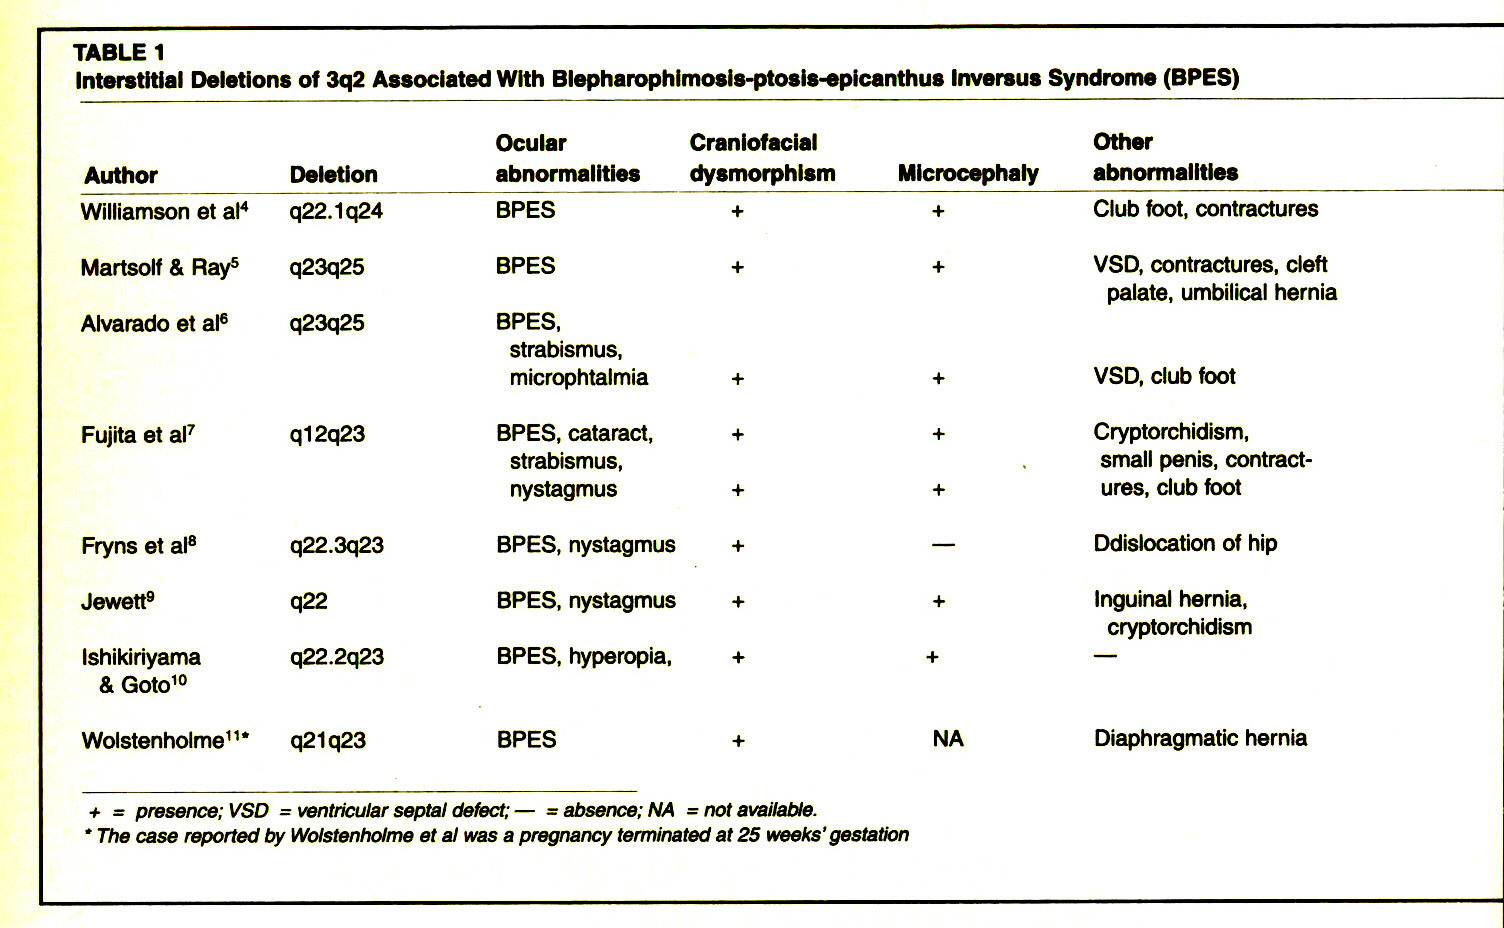 TABLE 1Interstitial Deletions of 3q2 Associated With Blepharophlmosis-ptosis-epicanthus Inversus Syndrome (BPES)